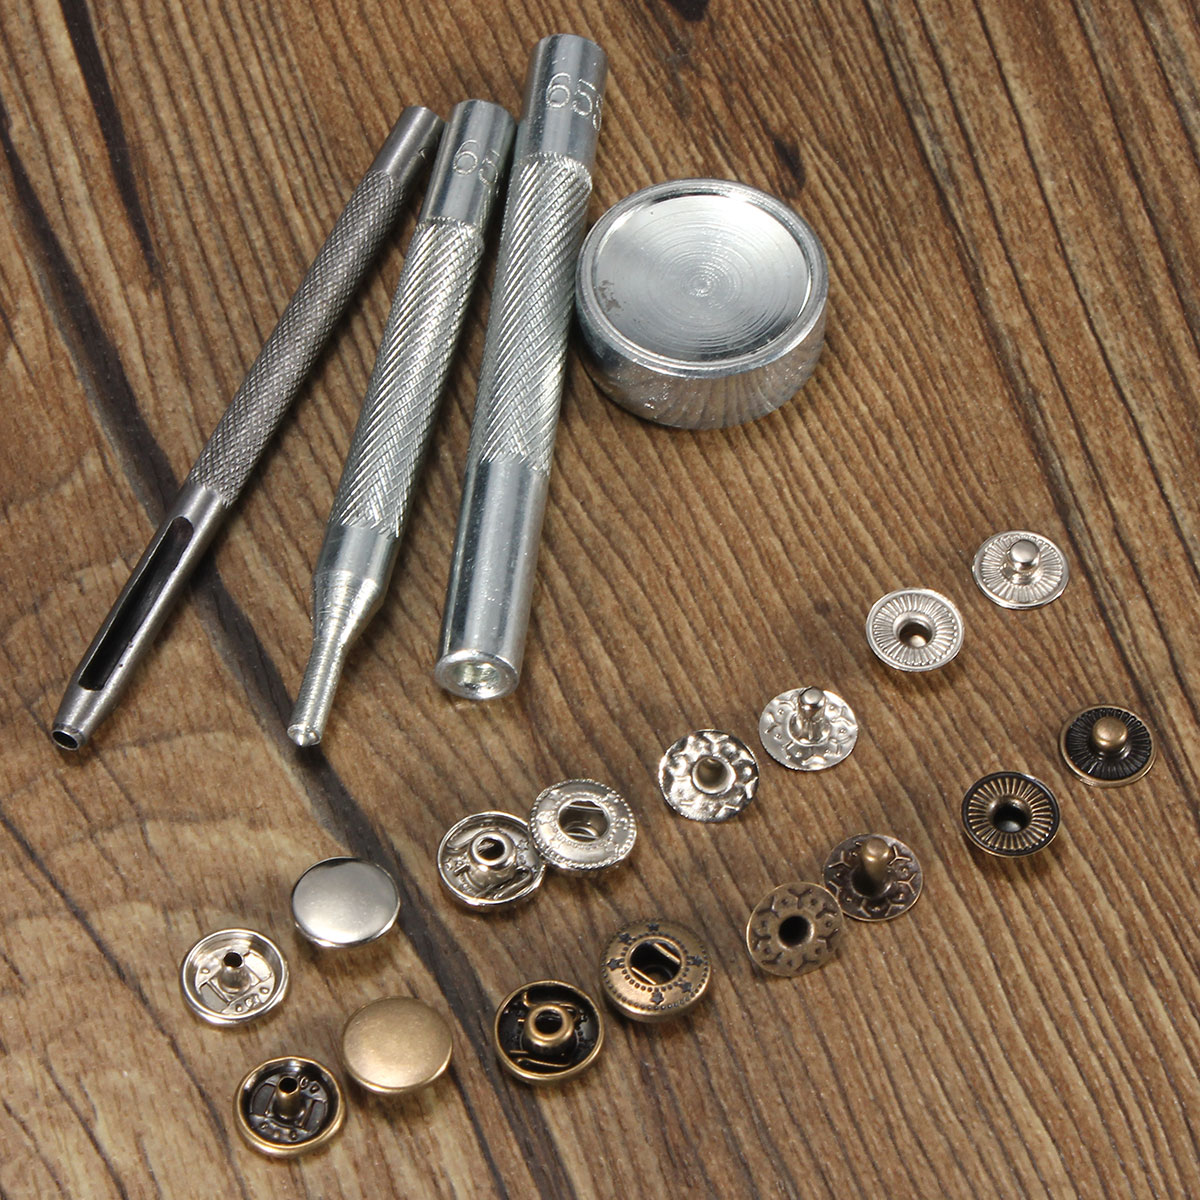 10mm Press Stud Buttons Poppers Leather Craft with Fixi